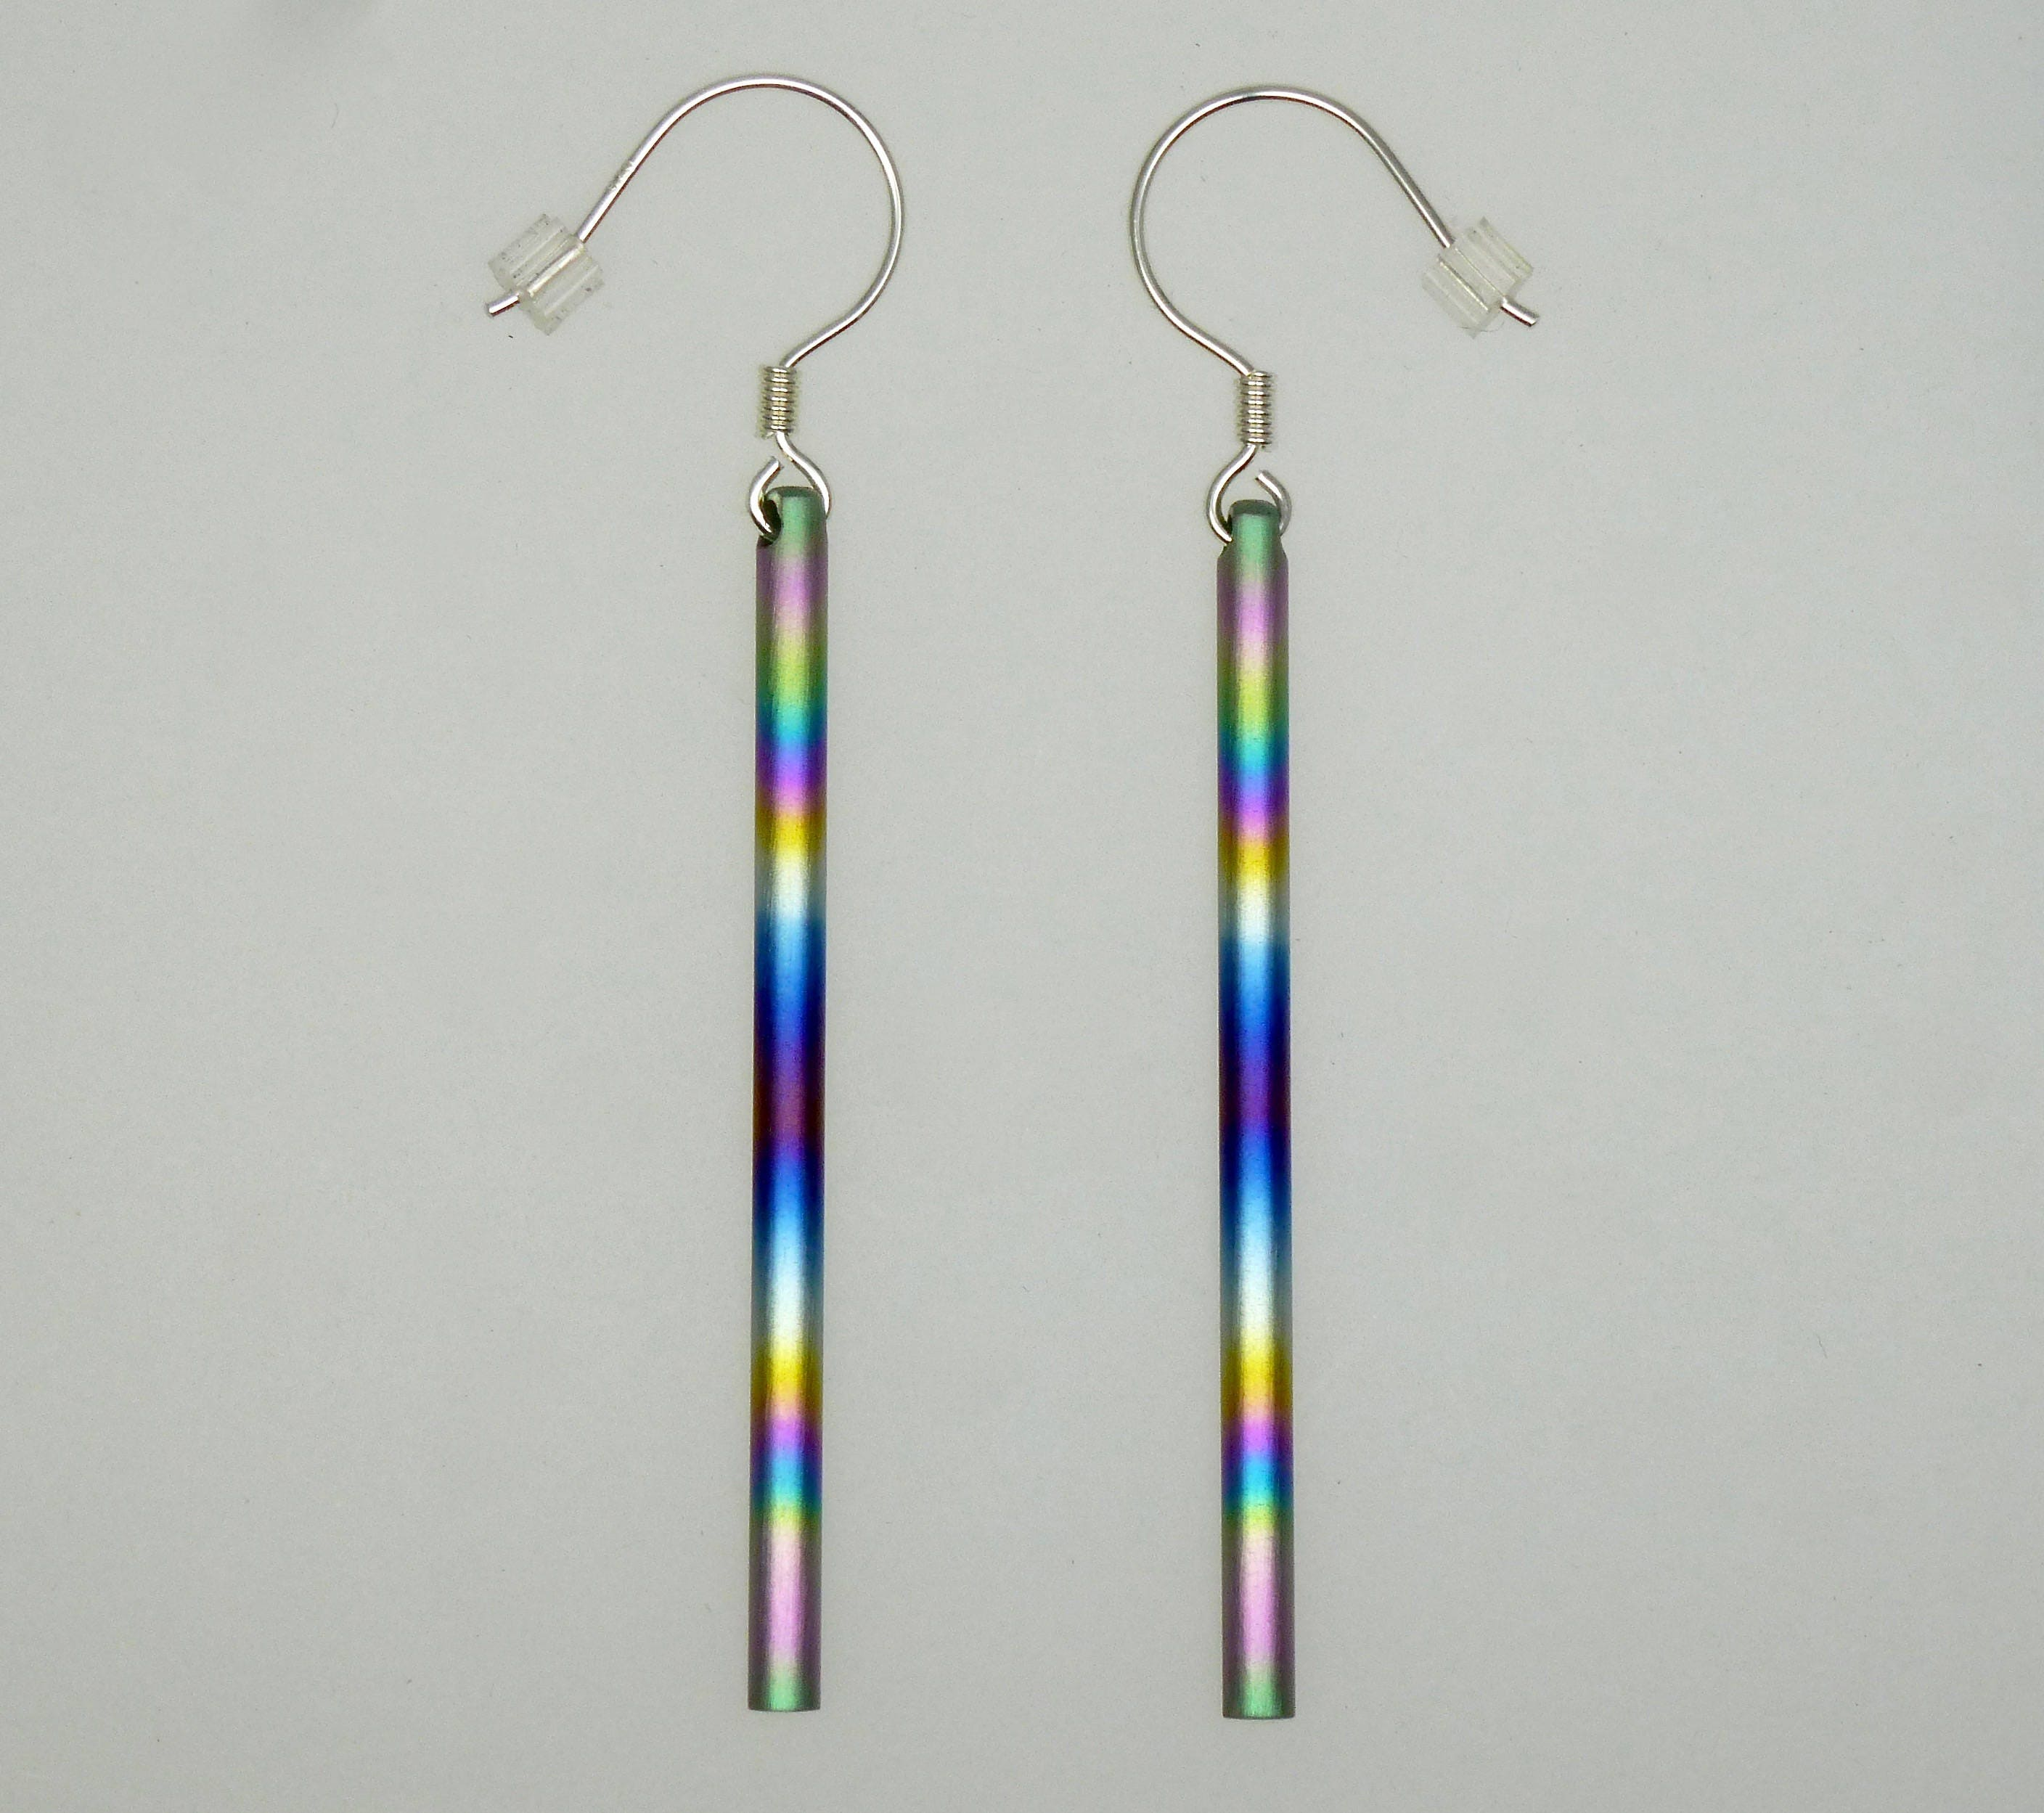 Anodized titanium long dangle round bar 3mm thick and 50 mm in length   Anodized titanium and silver pair of earrings